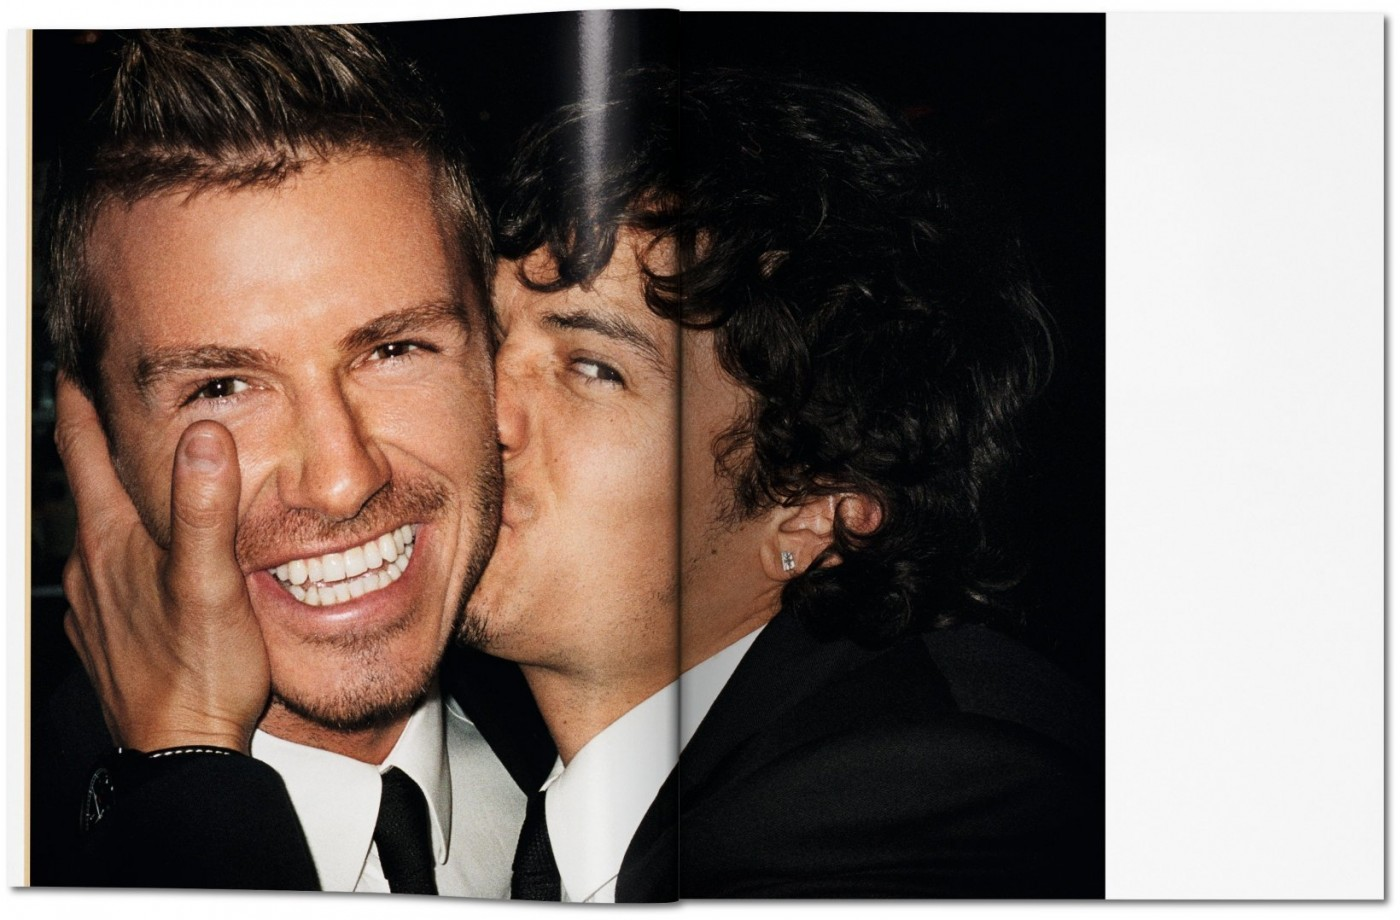 mario testino publications end > > > >